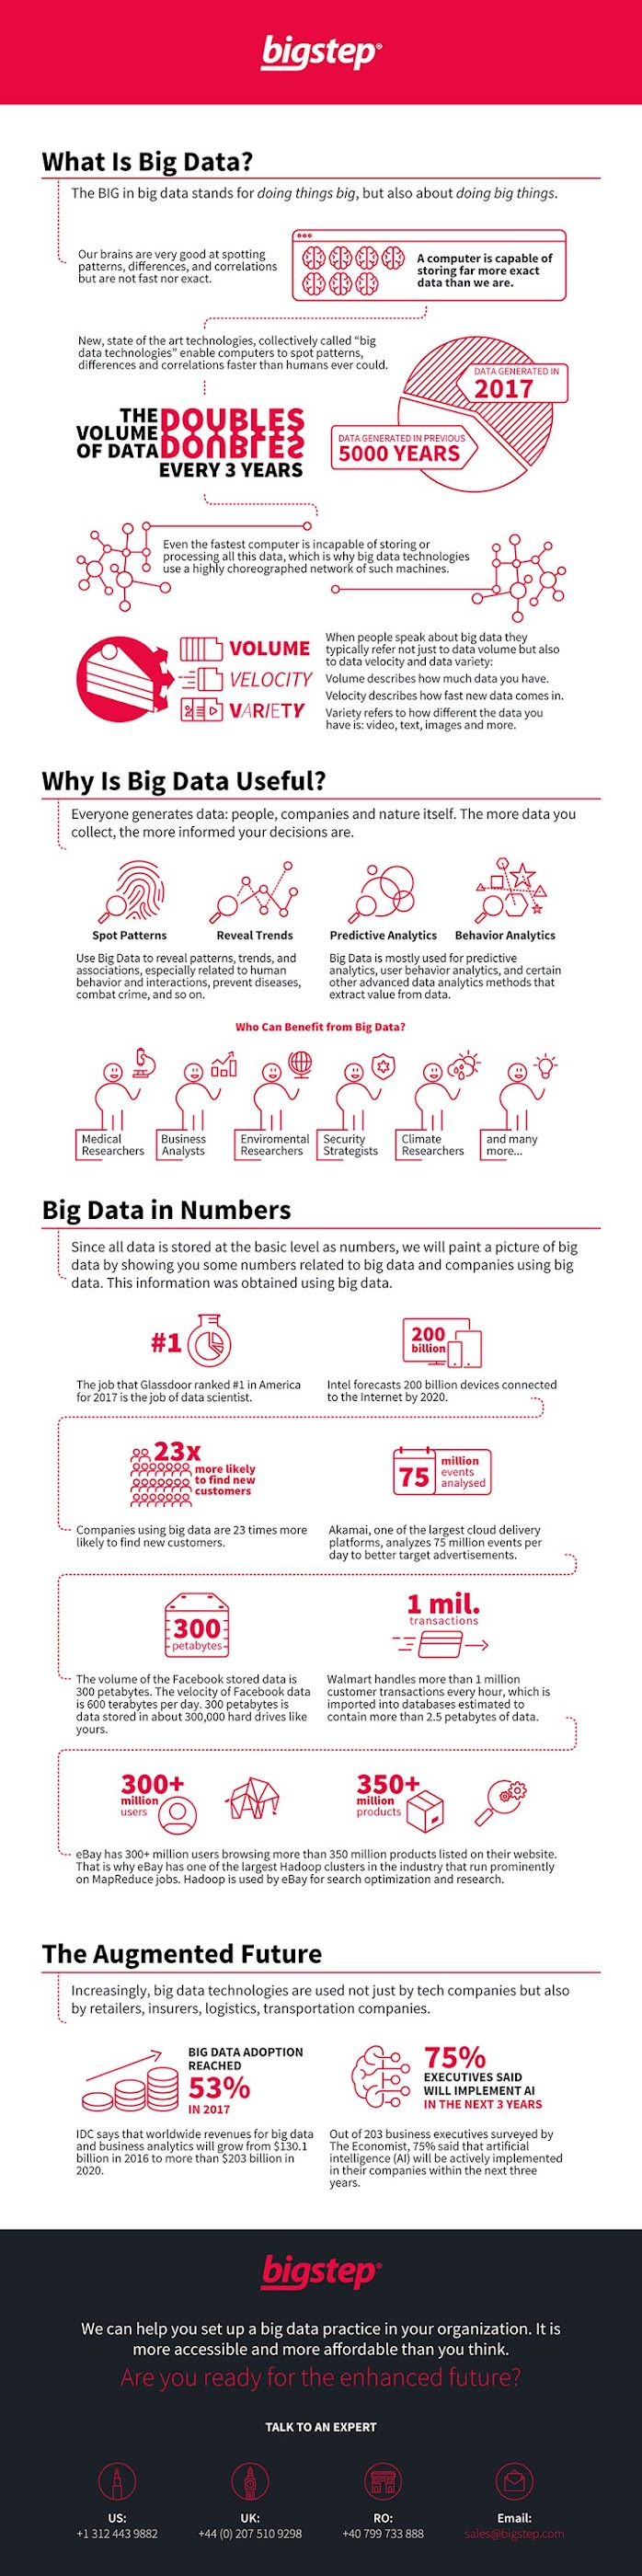 What Is Big Data? (explained) - Infographic